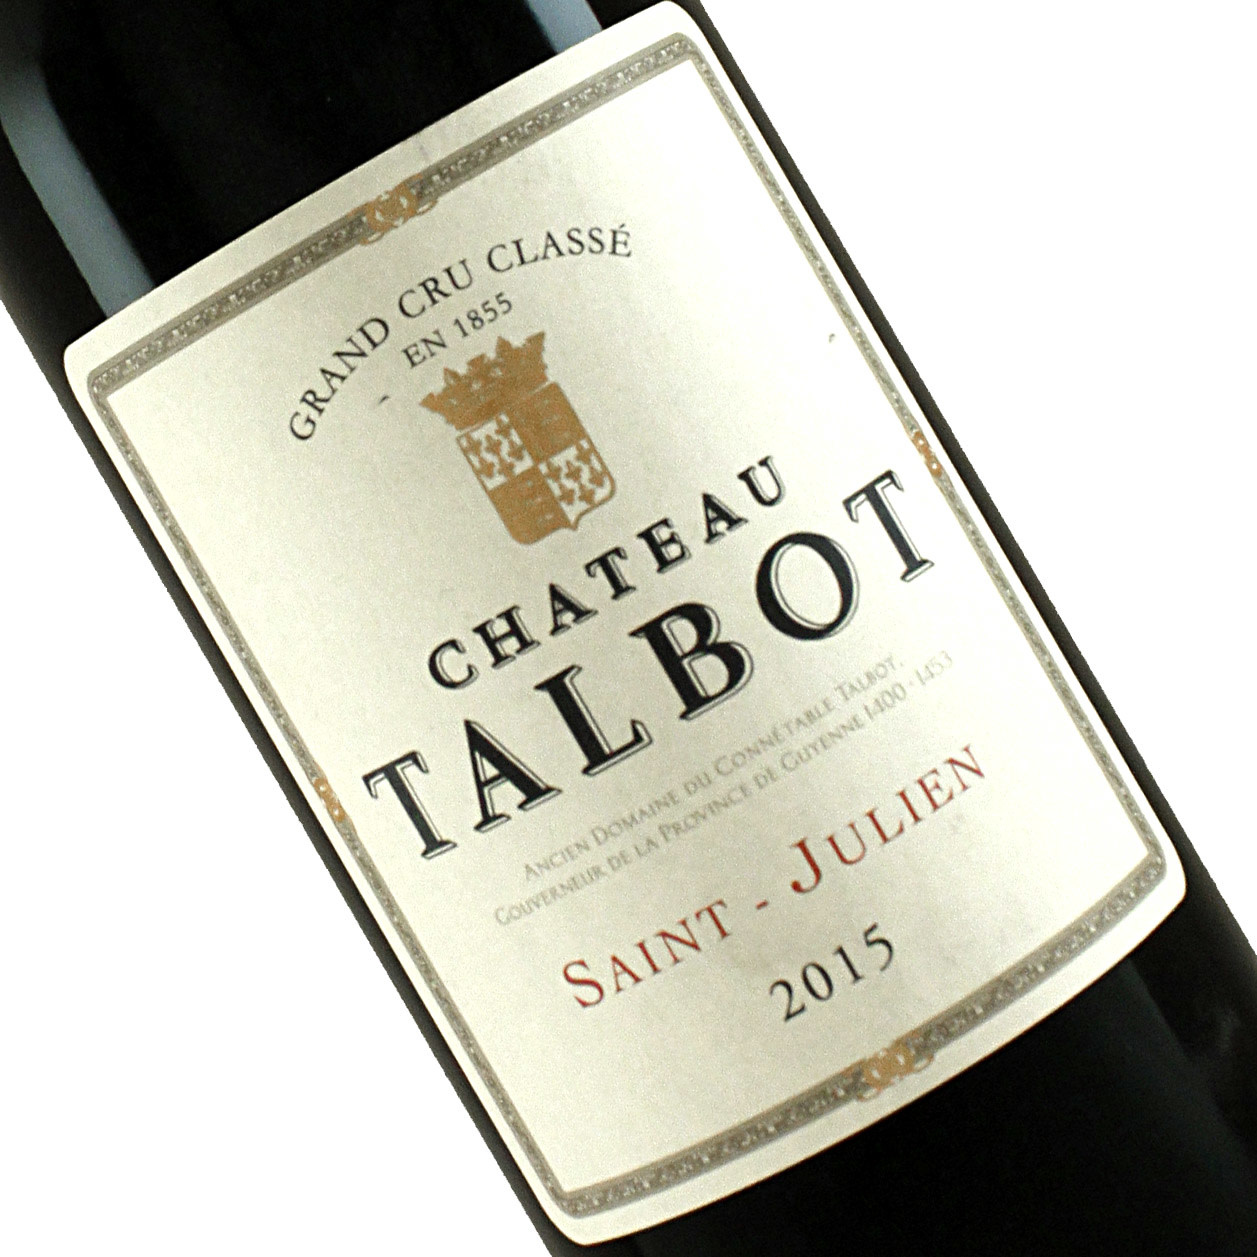 Chateau Talbot 2015 Saint-Julien, Bordeaux